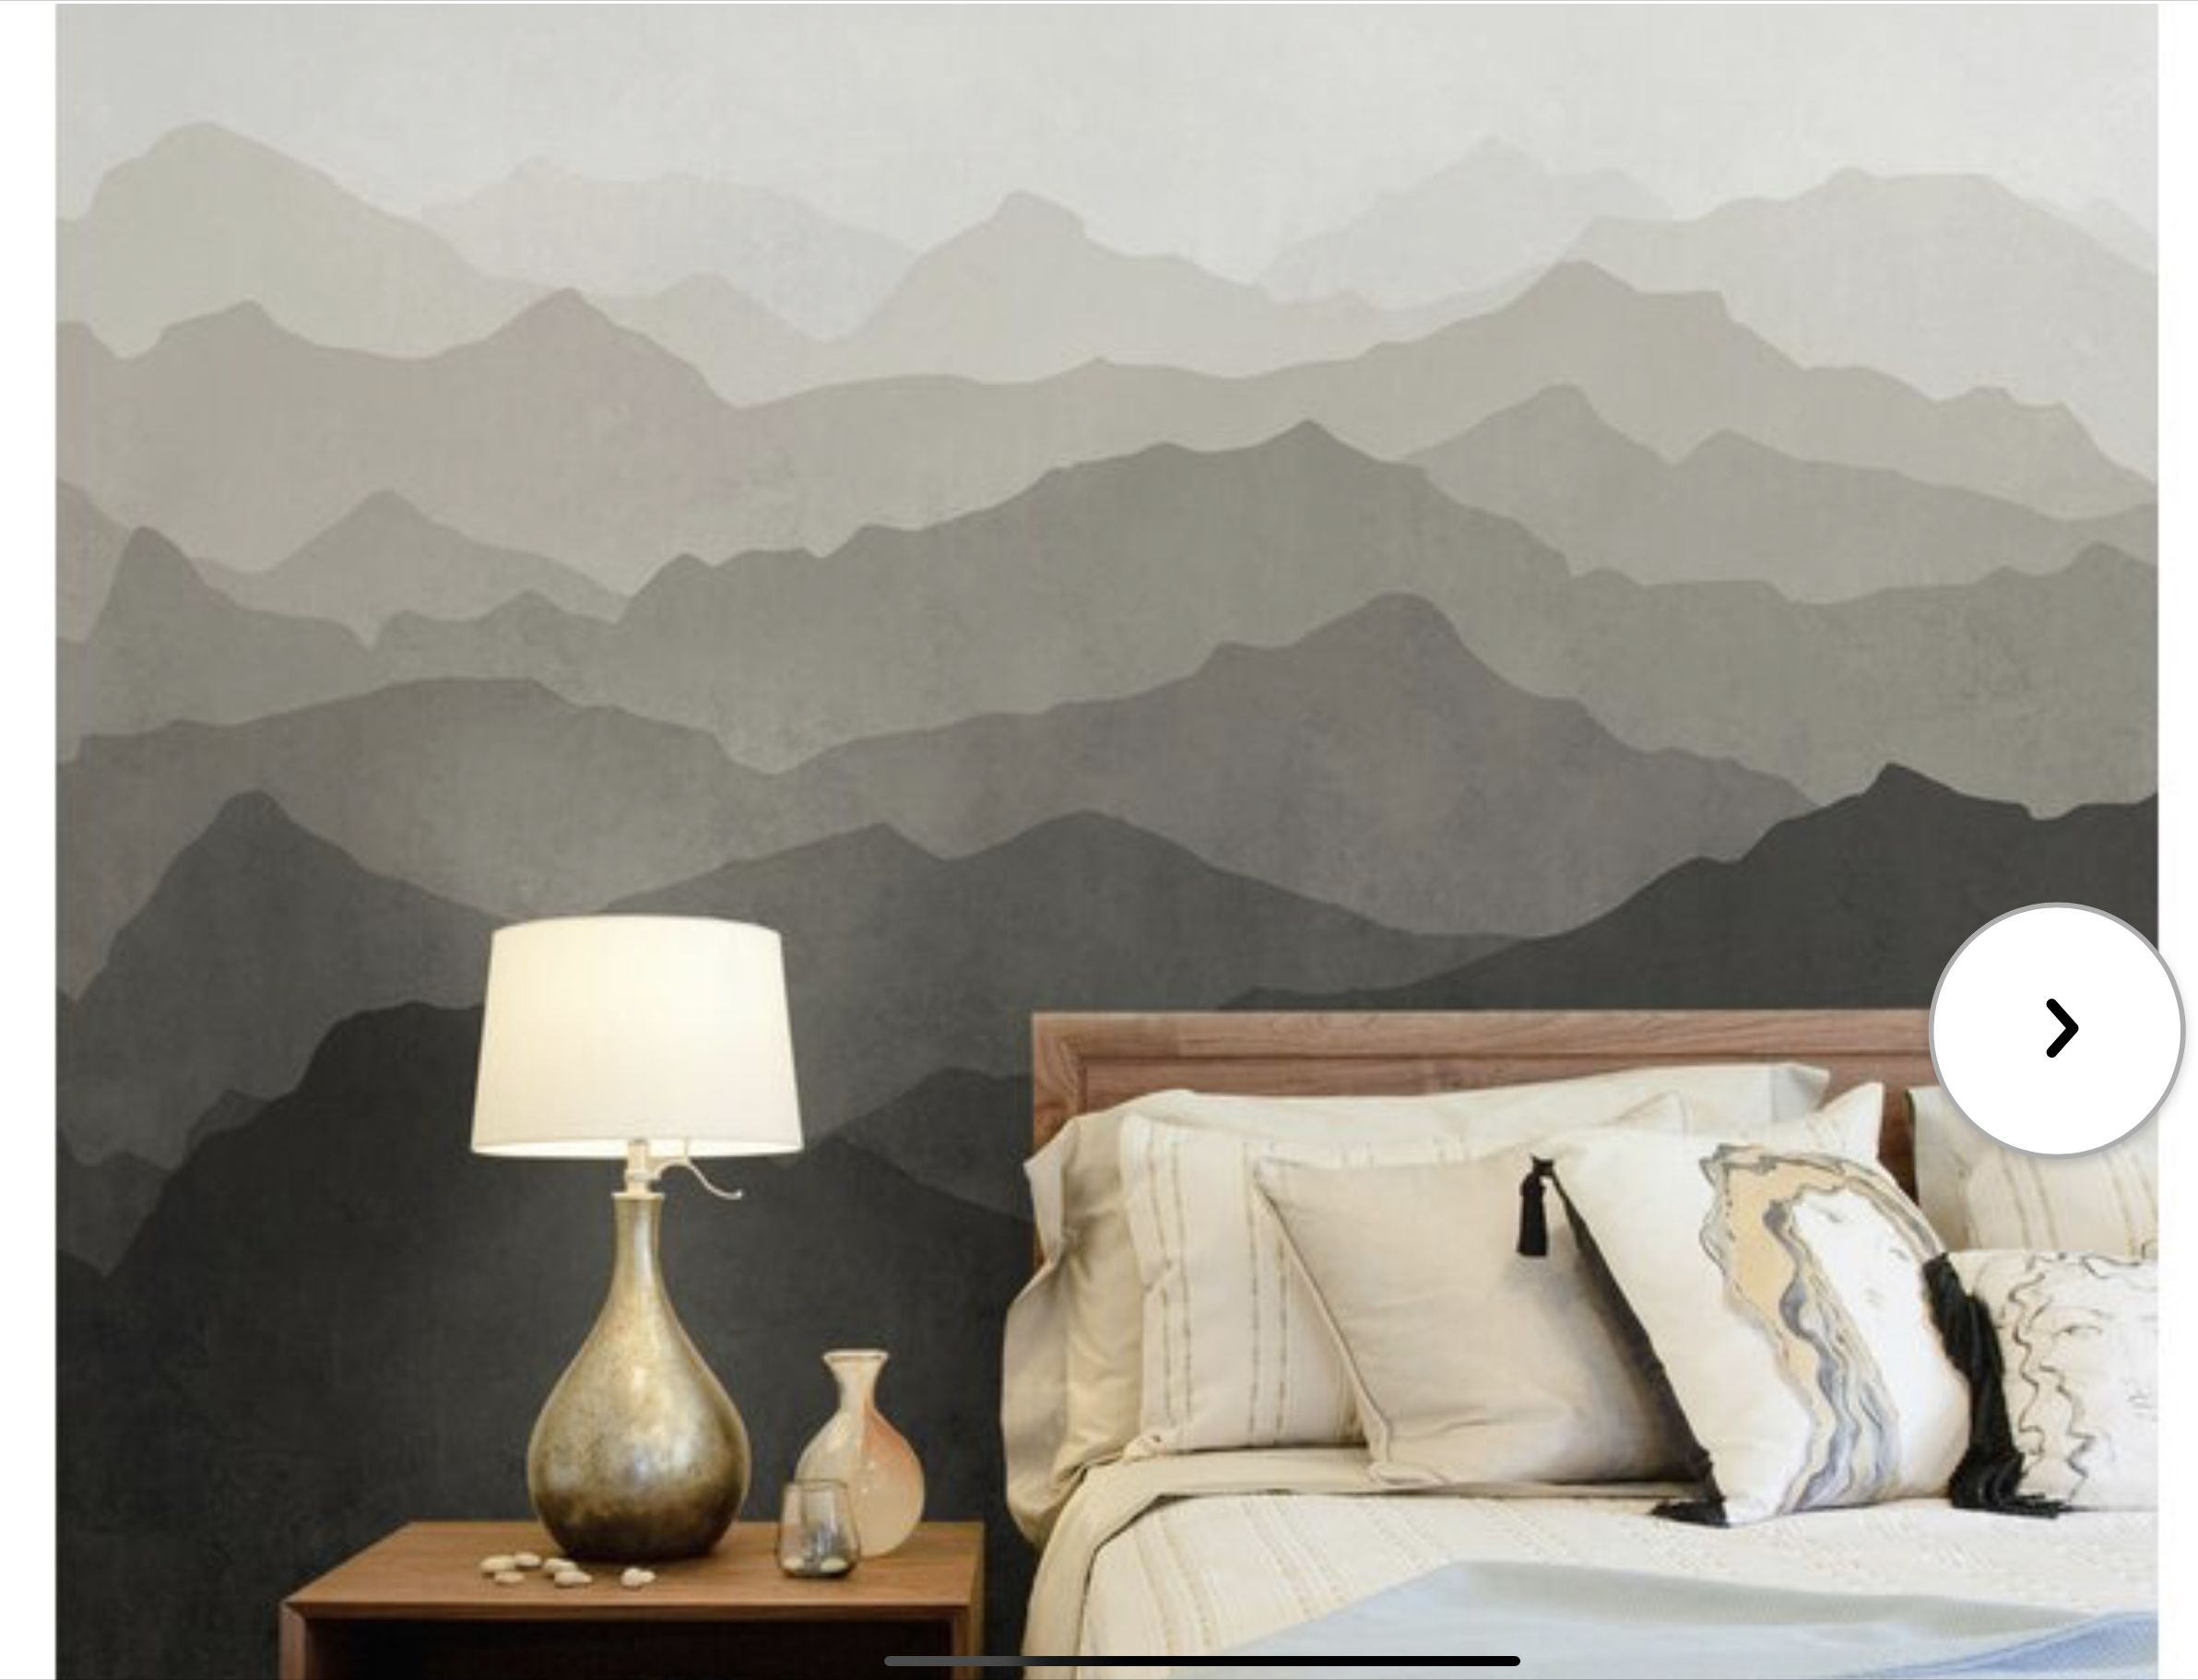 Pin by Laura Beth Hudson on Wall Art in 2020 Mountain